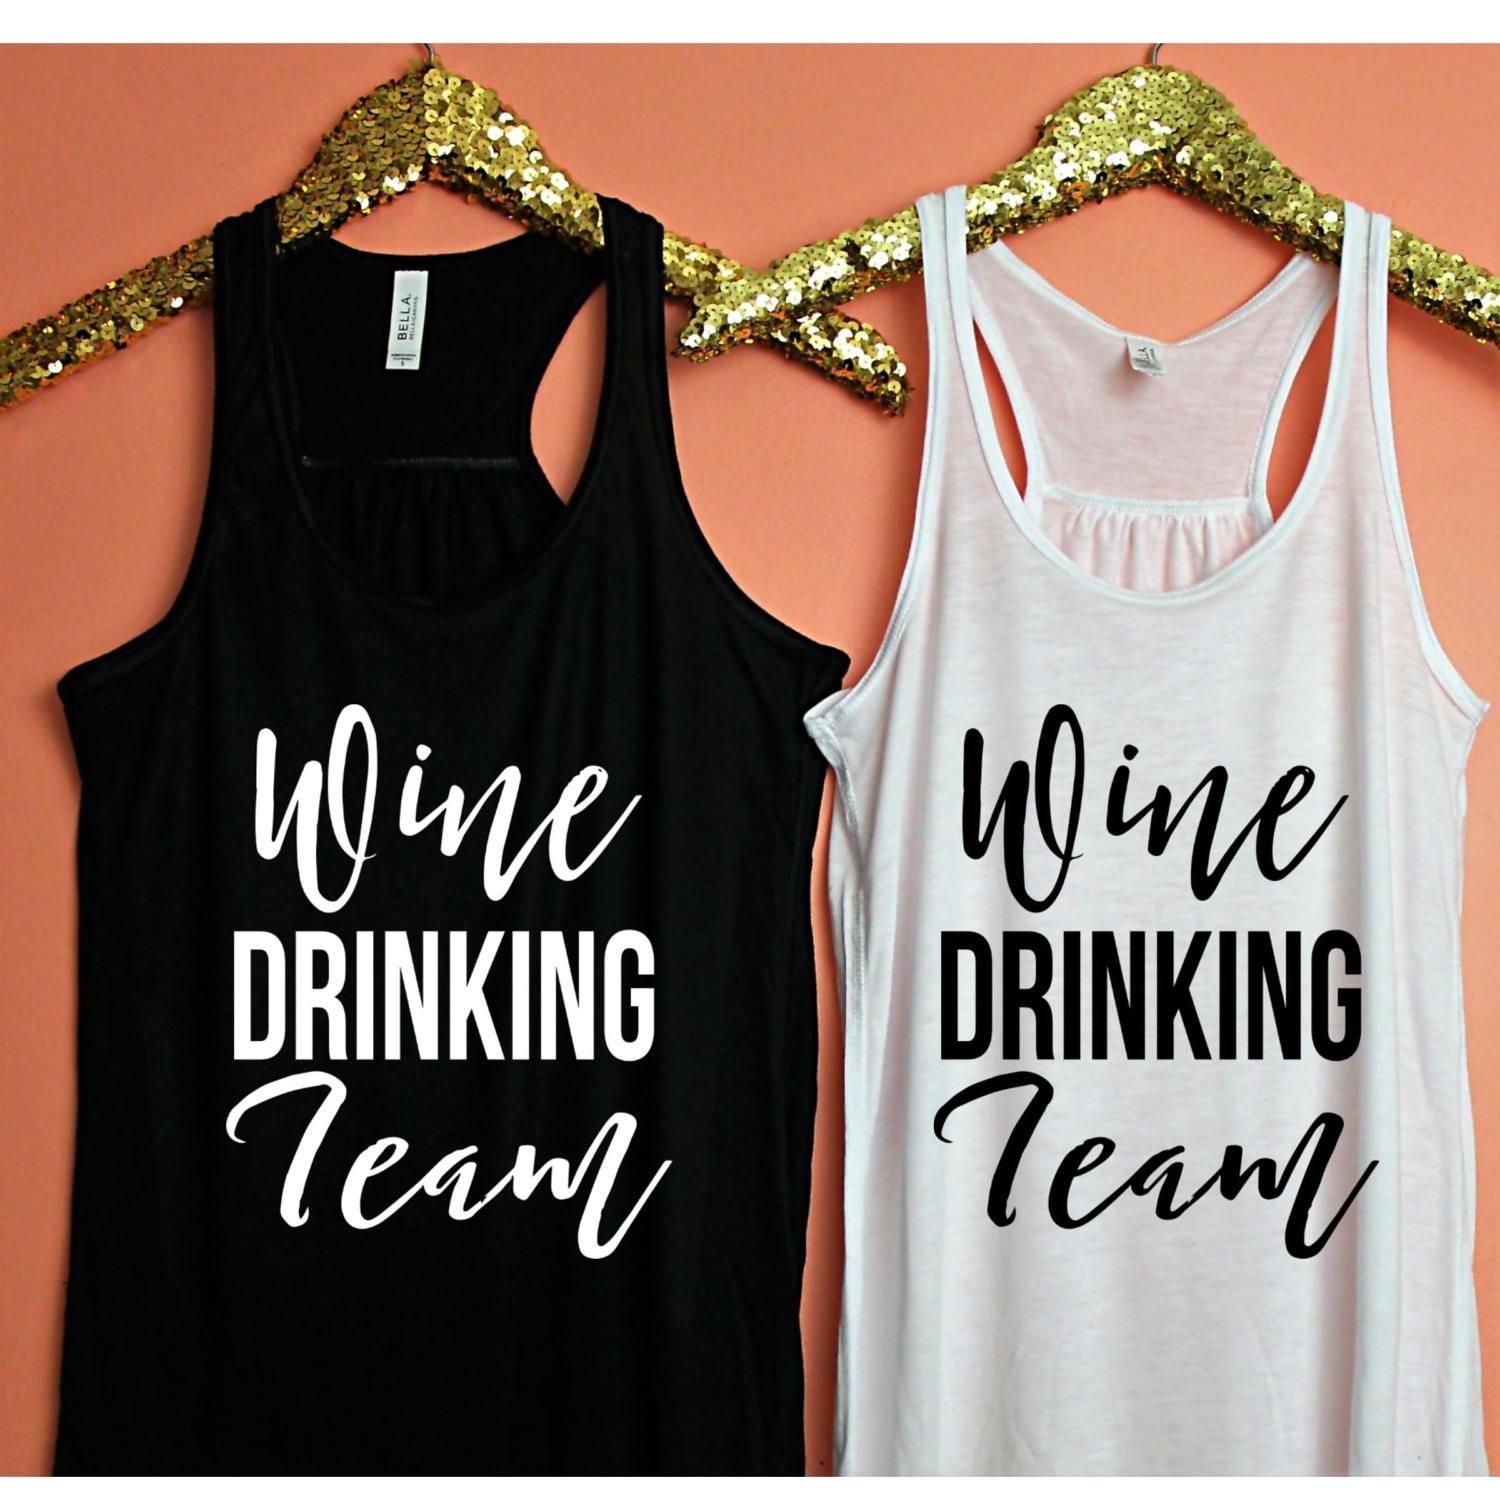 funny bachelorette party sayings for invitations%0A Bachelorette Party Shirts  Vegas Bachelorette Tank Top  Bachelorette Party  Tanks  So we said Vegas  Vegas Bachelorette Party Shirt by ShopatBash on  Etsy